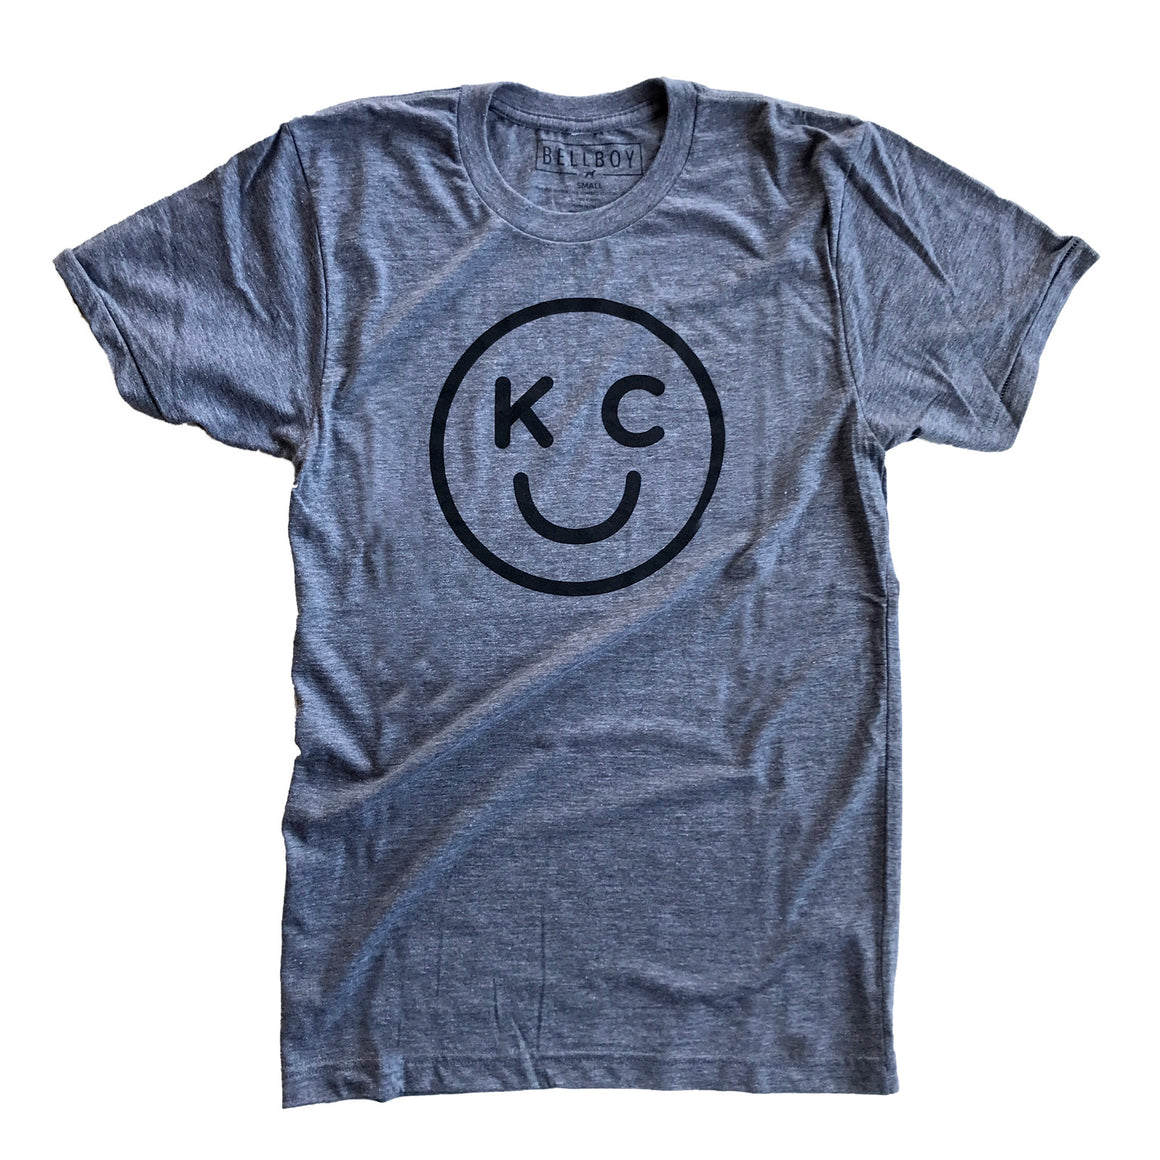 BELLBOY | KC SMILEY GREY